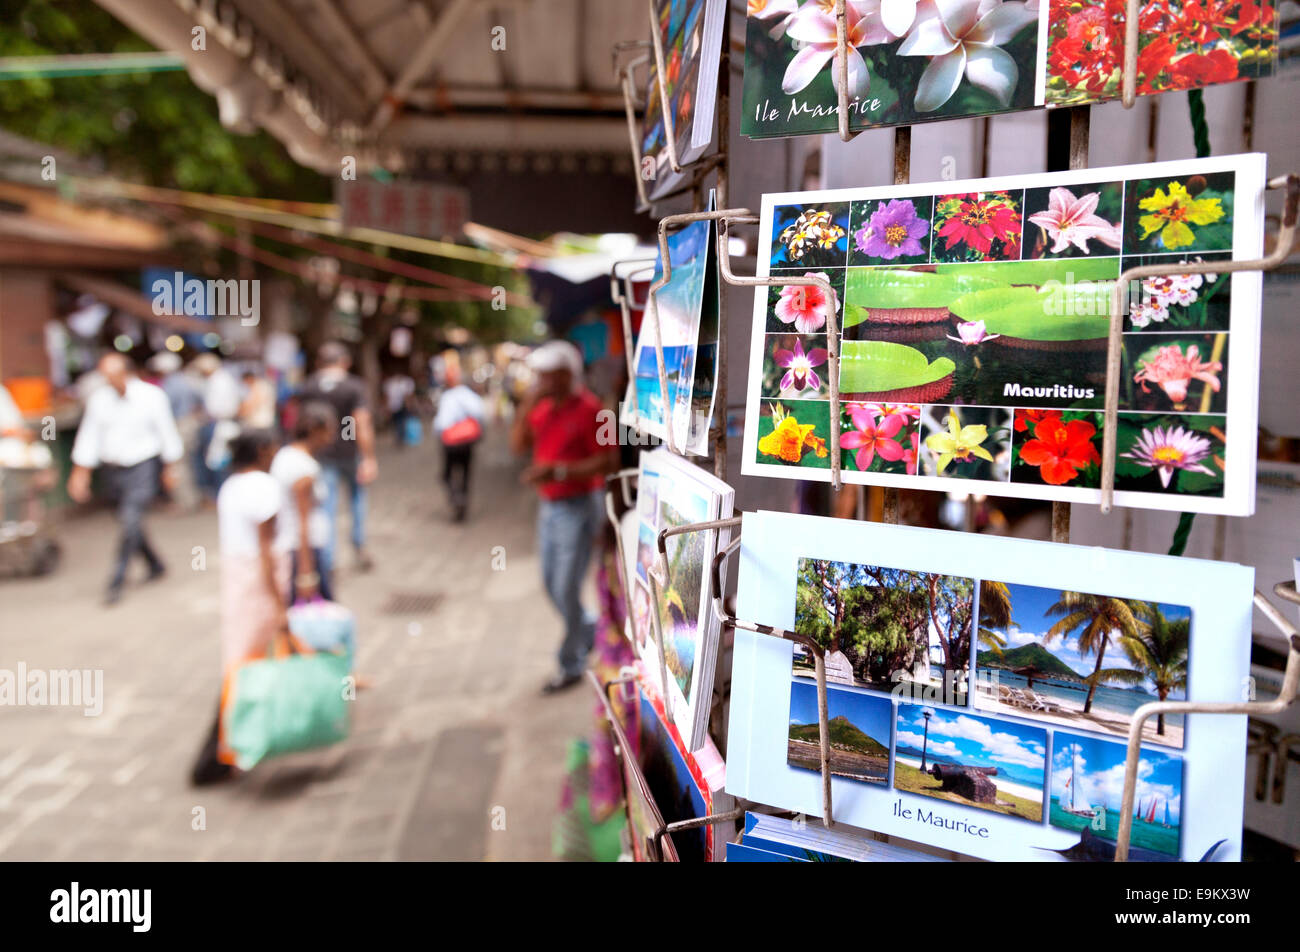 Mauritius postcards for sale, Port Louis, Mauritius Stock Photo